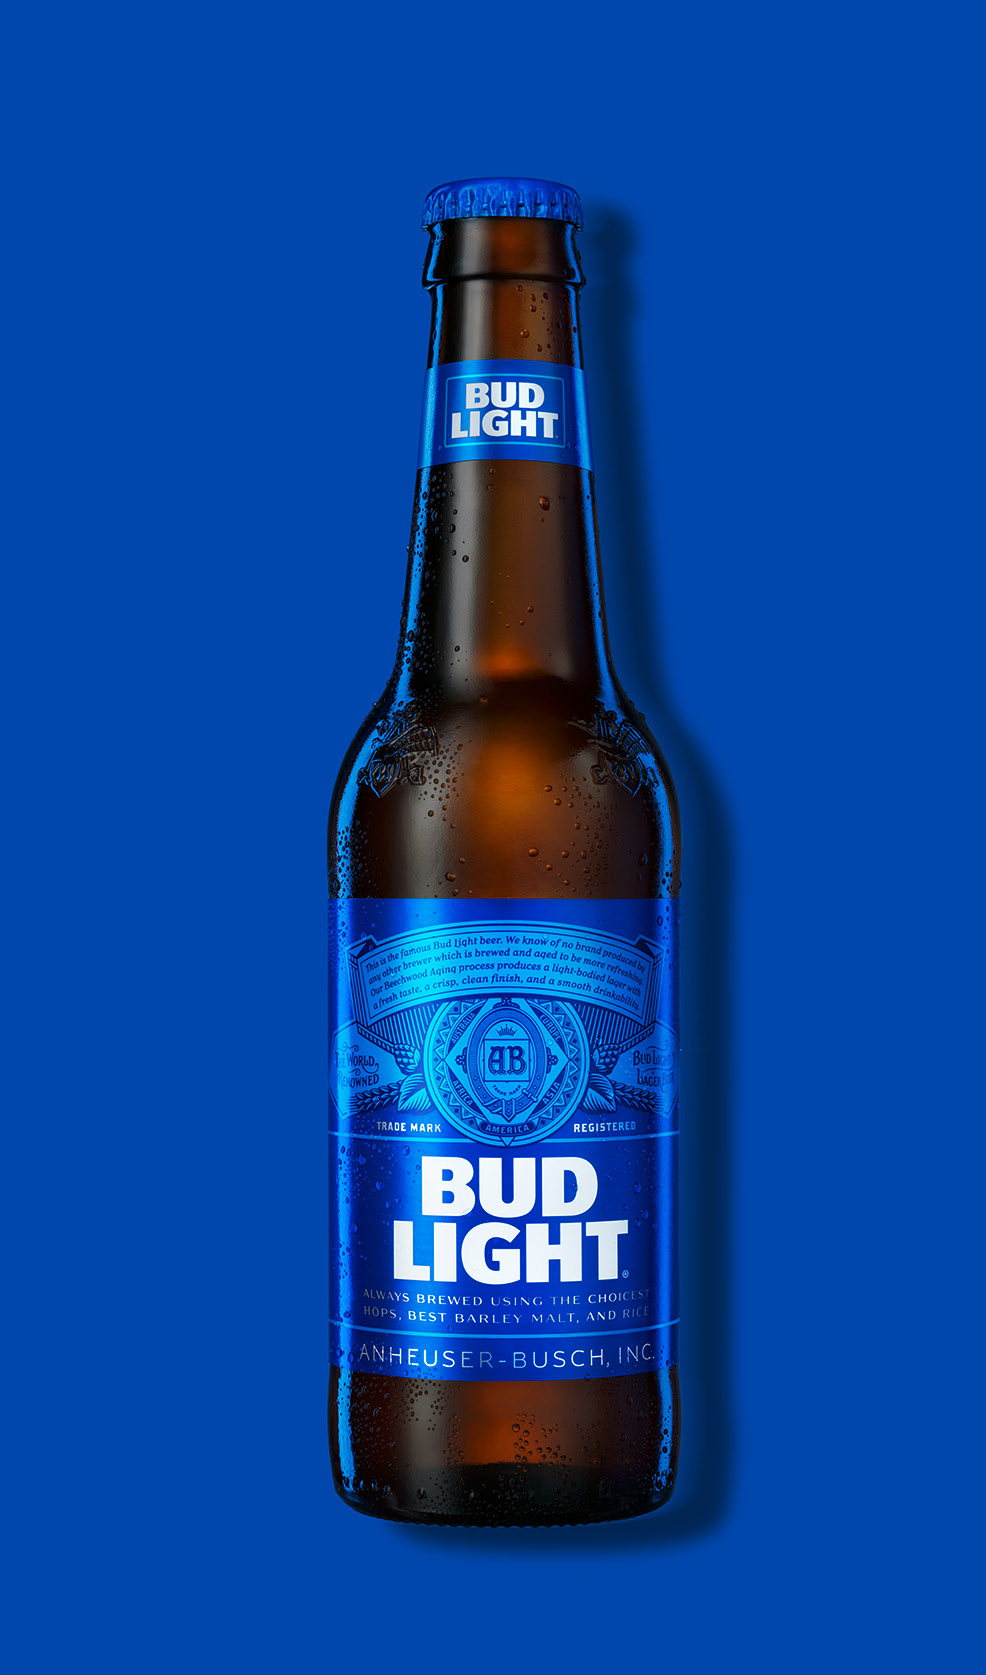 bud_light-packaging.jpg